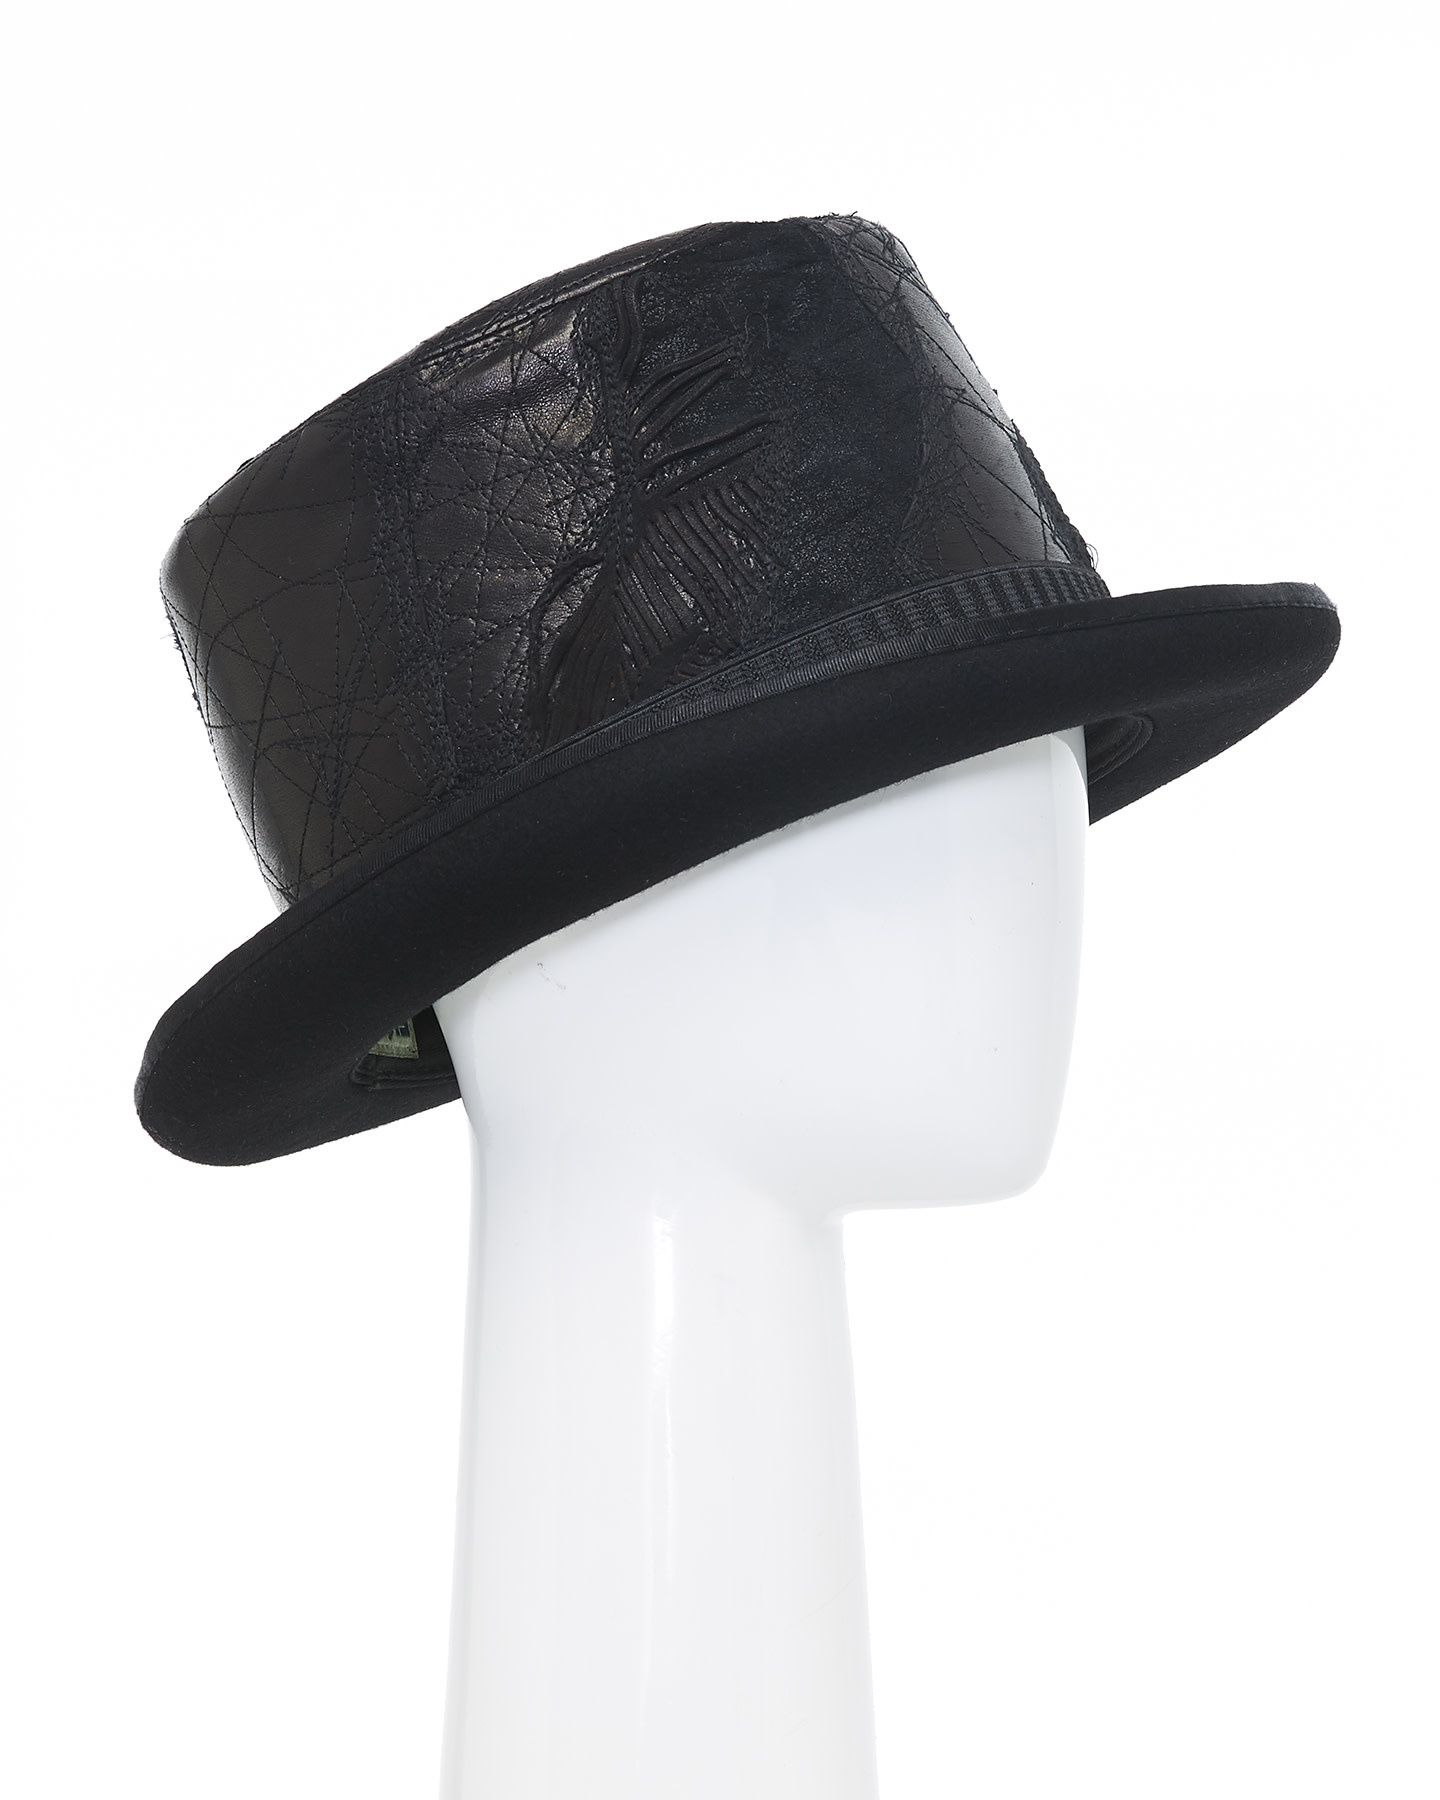 UPCYCLED RE-EMBROIDERED LEATHER TOP HAT V.1